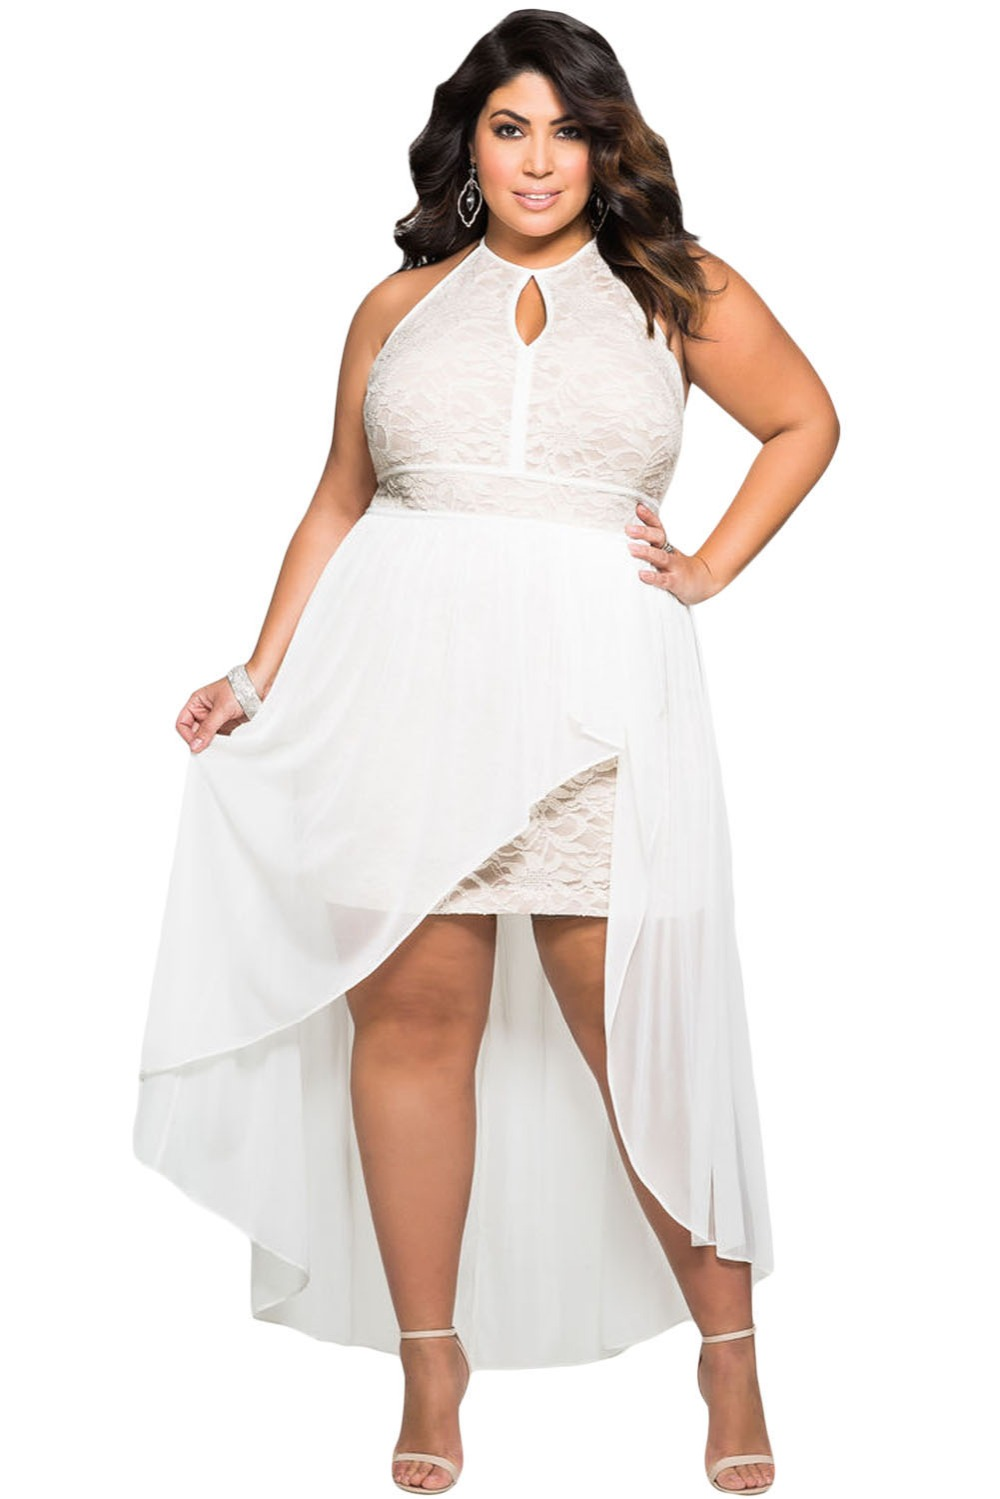 Plus Size Womens Special Occasion Dresses 103